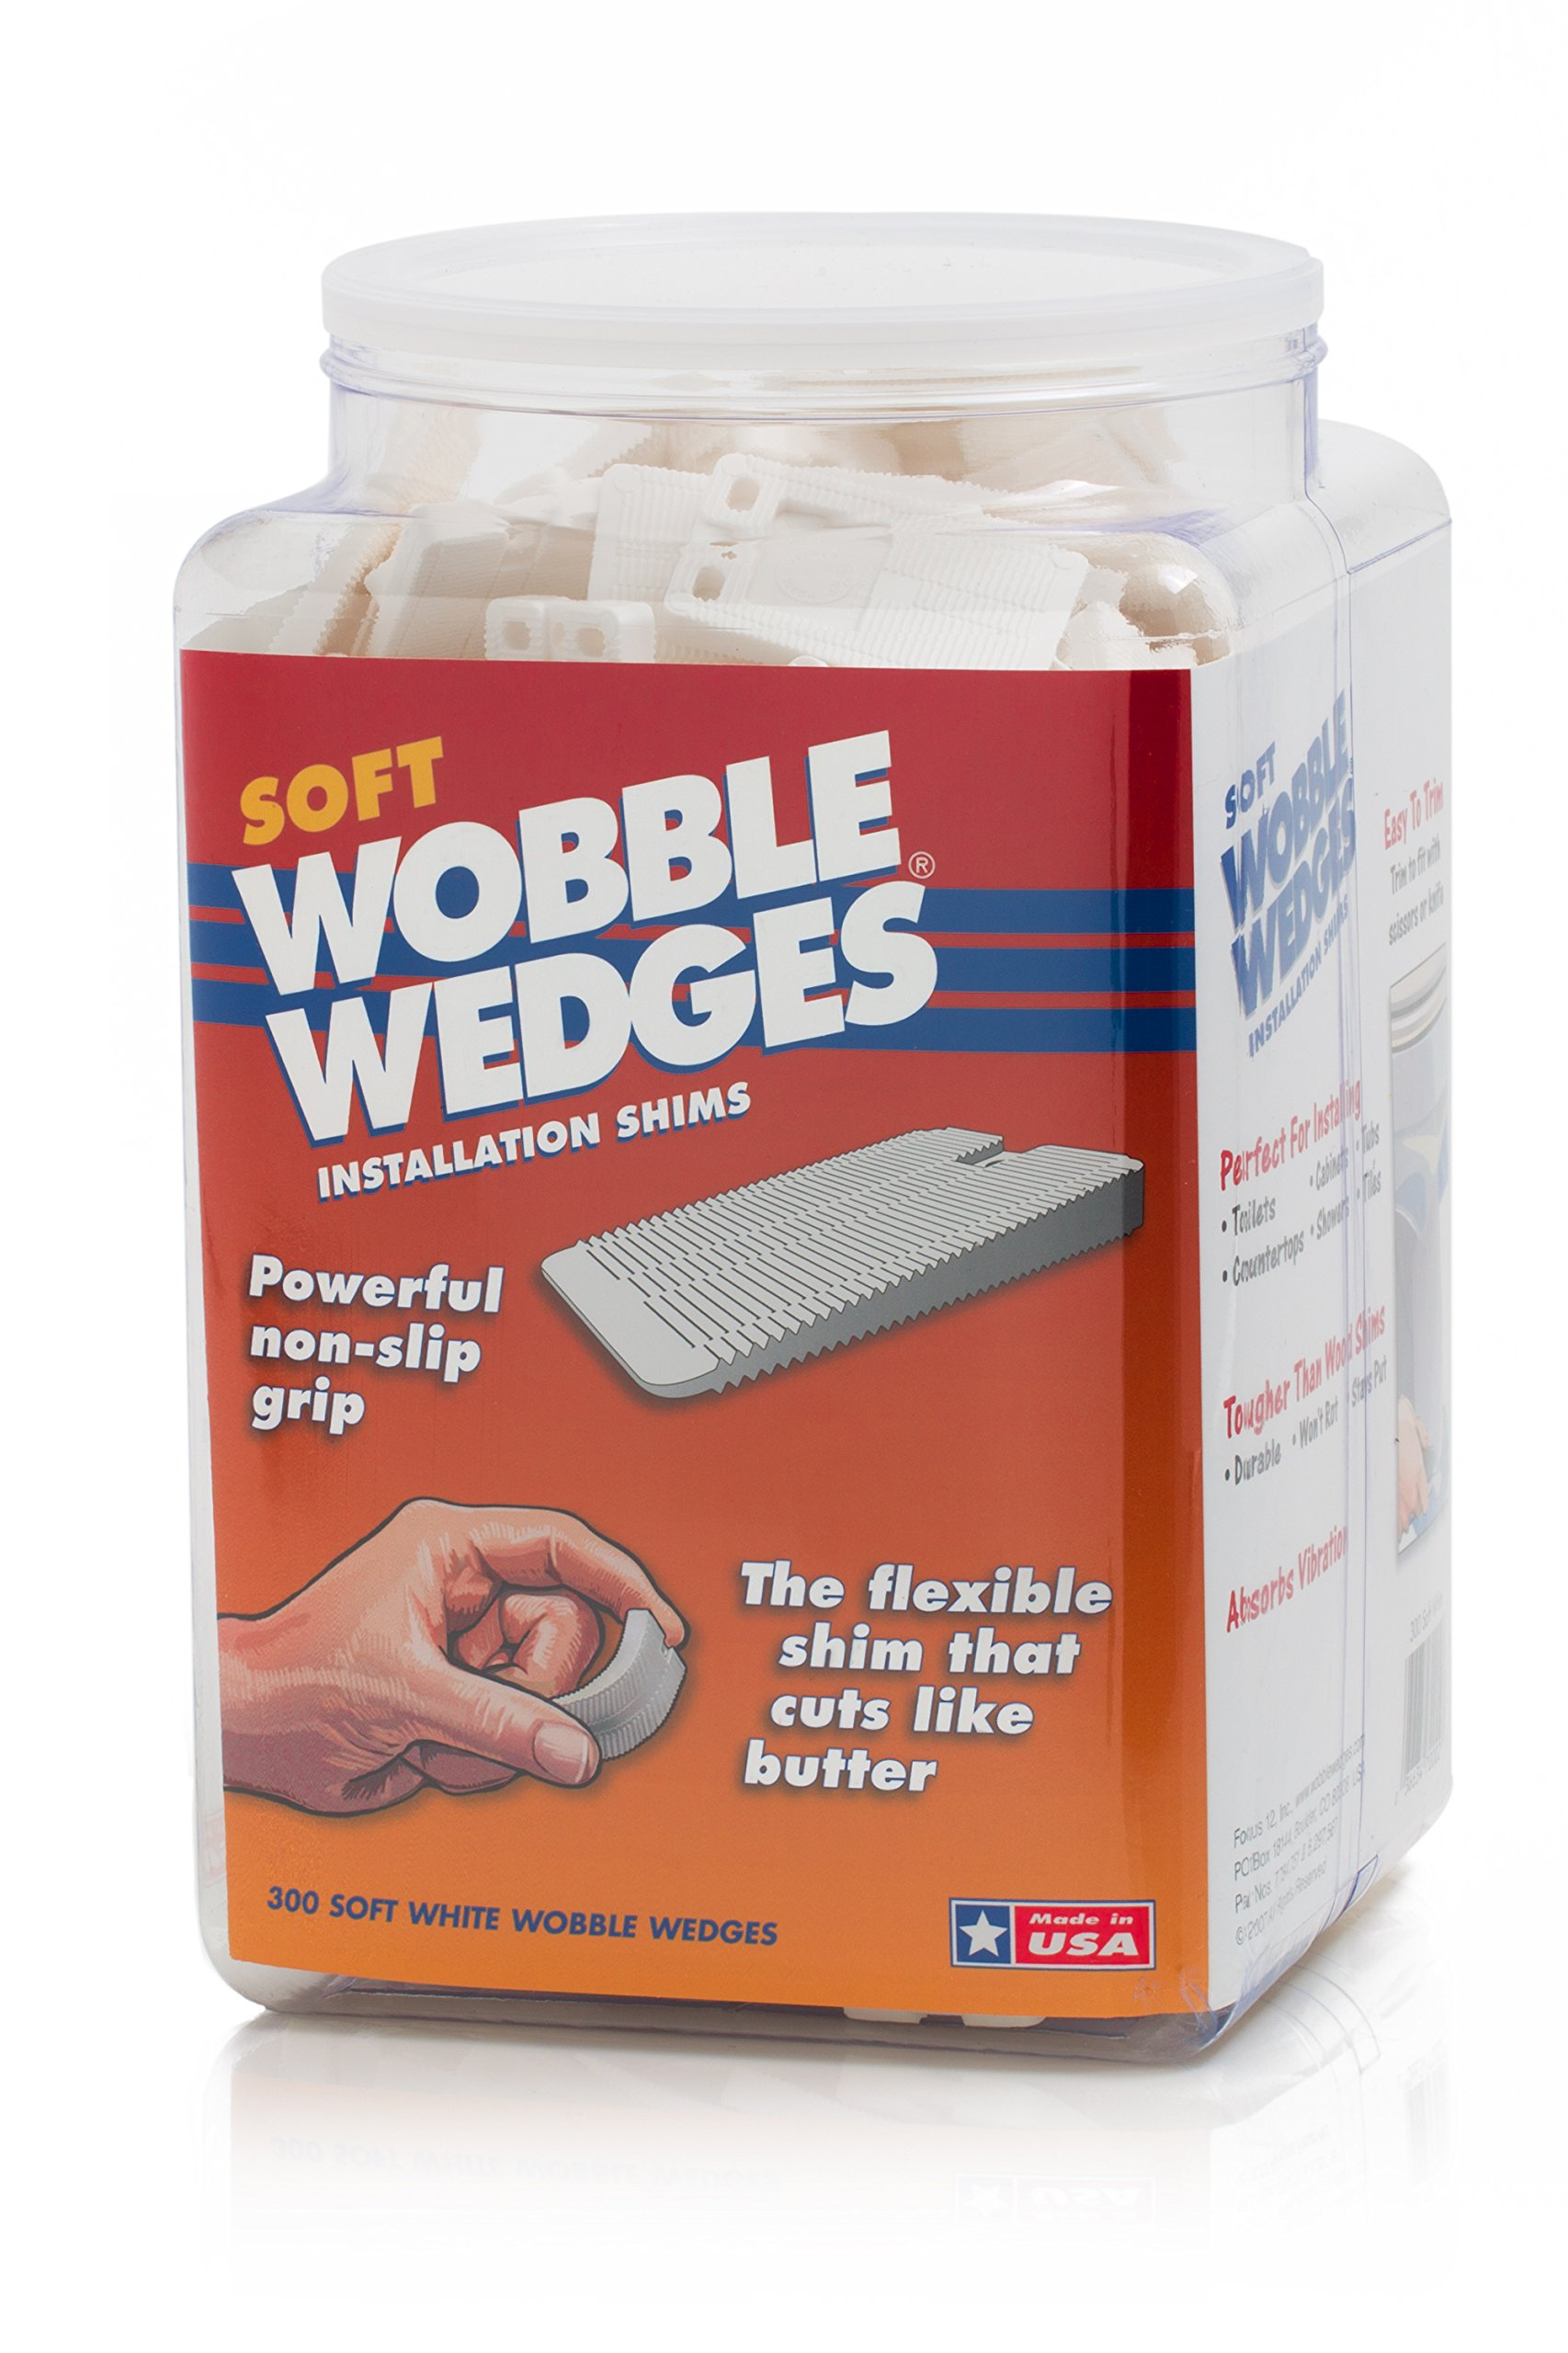 Wobble Wedges Multi-Purpose Shims-Soft White 300 ea -Easy Trim -Protect Delicate Surfaces -Level Household Furniture and Plumbing Fixtures -Stop rattling pipes -Use as Clamping Pad on Angled Surface